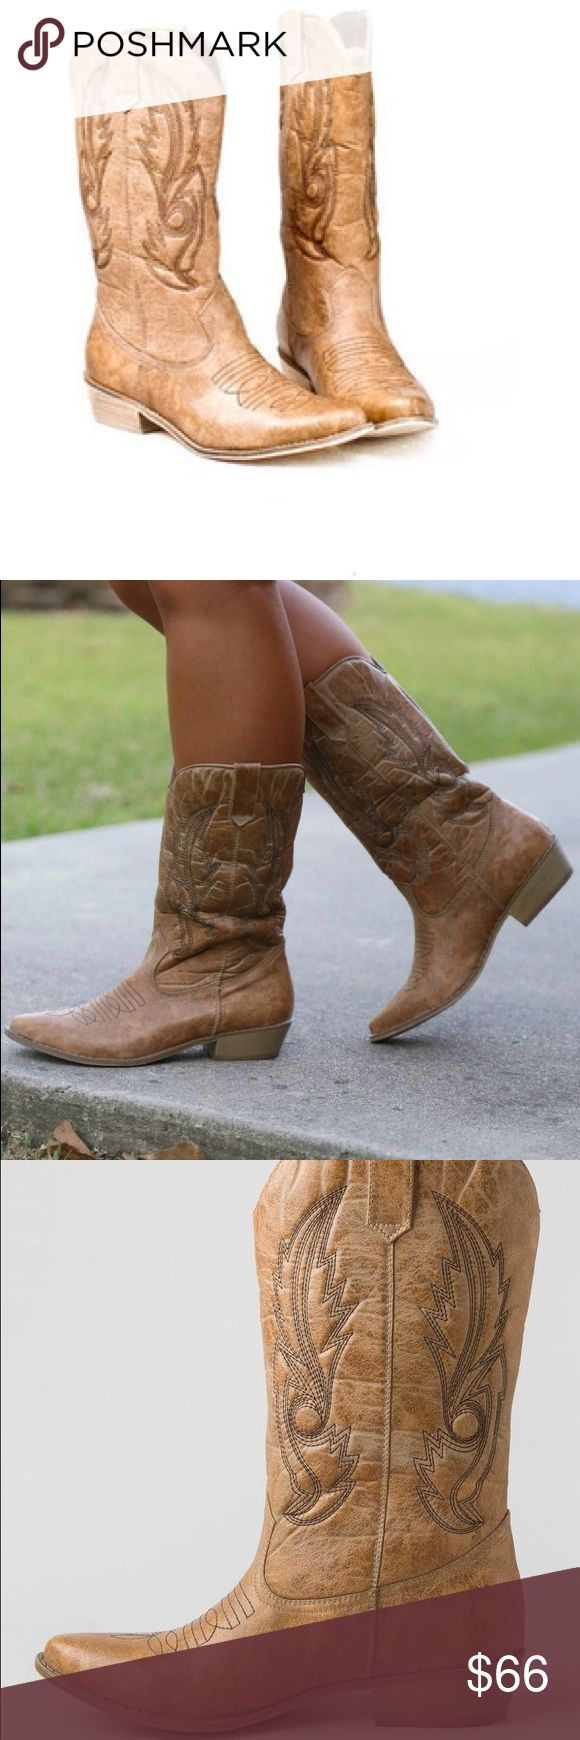 """🌼OFFERS WELCOME🌼NWT cowboy boots Brand new still have the box and never worn Matisse coconuts brand cowboy boots in the color """"gaucho"""". These are seriously adorable with distressed leather look and beauty western black embroidery. Unfortunately I needed a 7, these are 6.5. I paid full price they were over $100. So please don't lowball offer. Cowboy boots are high quality so they are expensive EVERYWHERE. Last 5 pics are mine. Great for concerts and festivals ✨ fp for views Ariat Shoes…"""